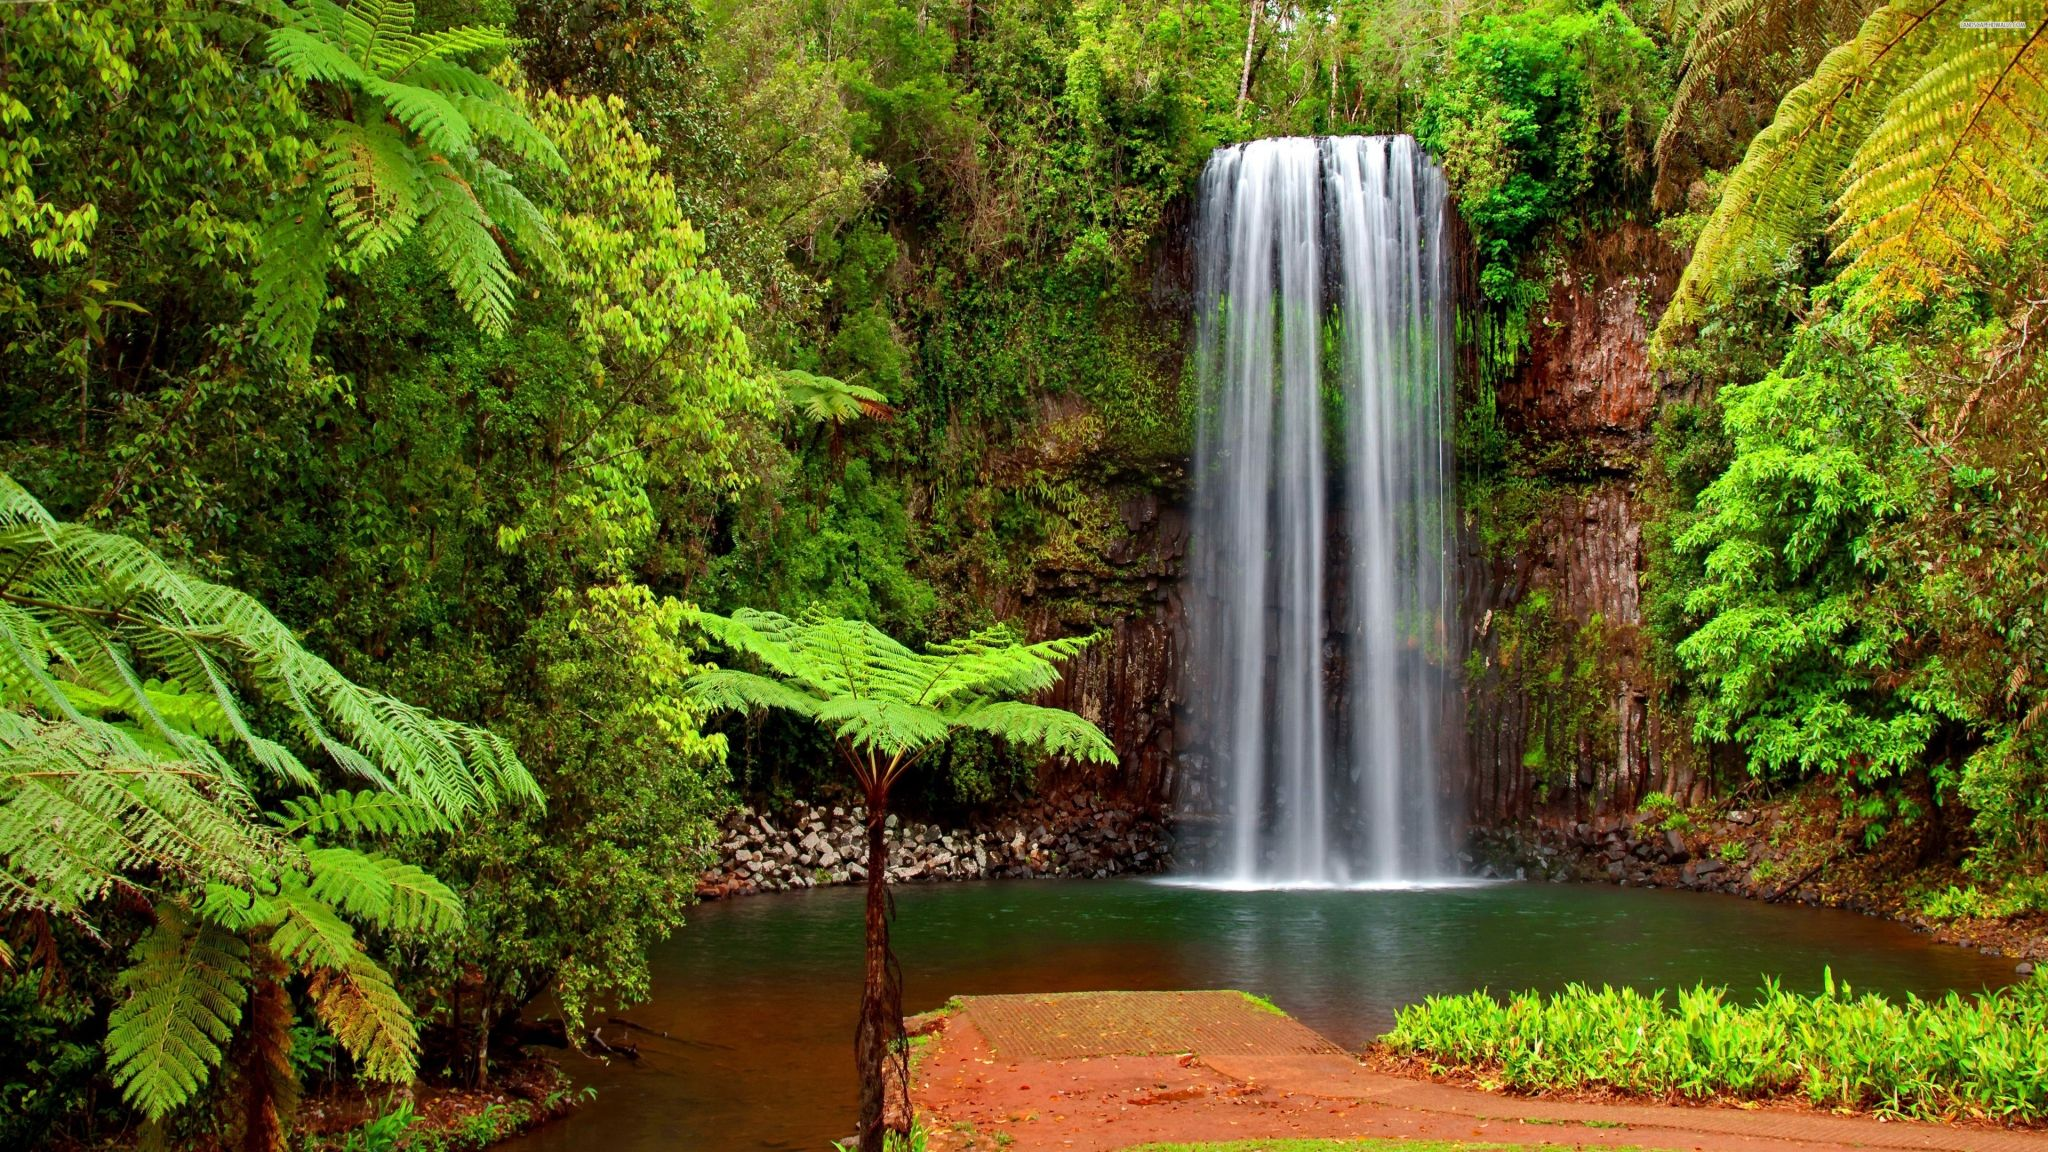 Waterfall Free Desktop Backgrounds For Winter Waterfall Wallpaper Waterfall Background Waterfall Photo